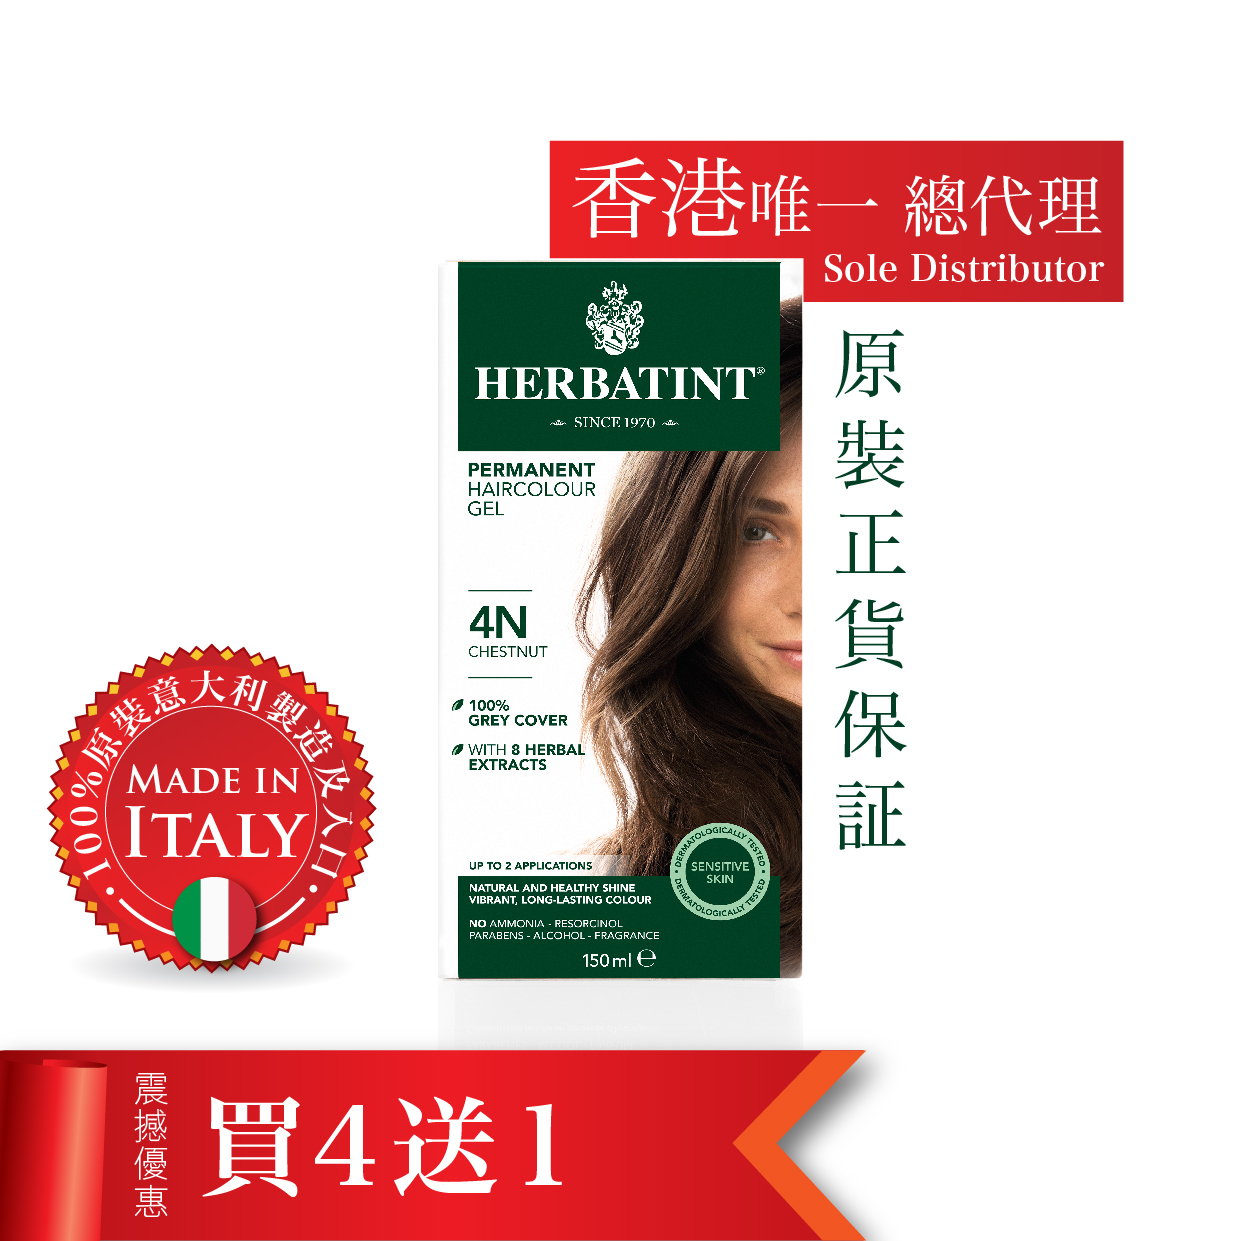 HERBATINT Hair Gel 4N (Chestnut)